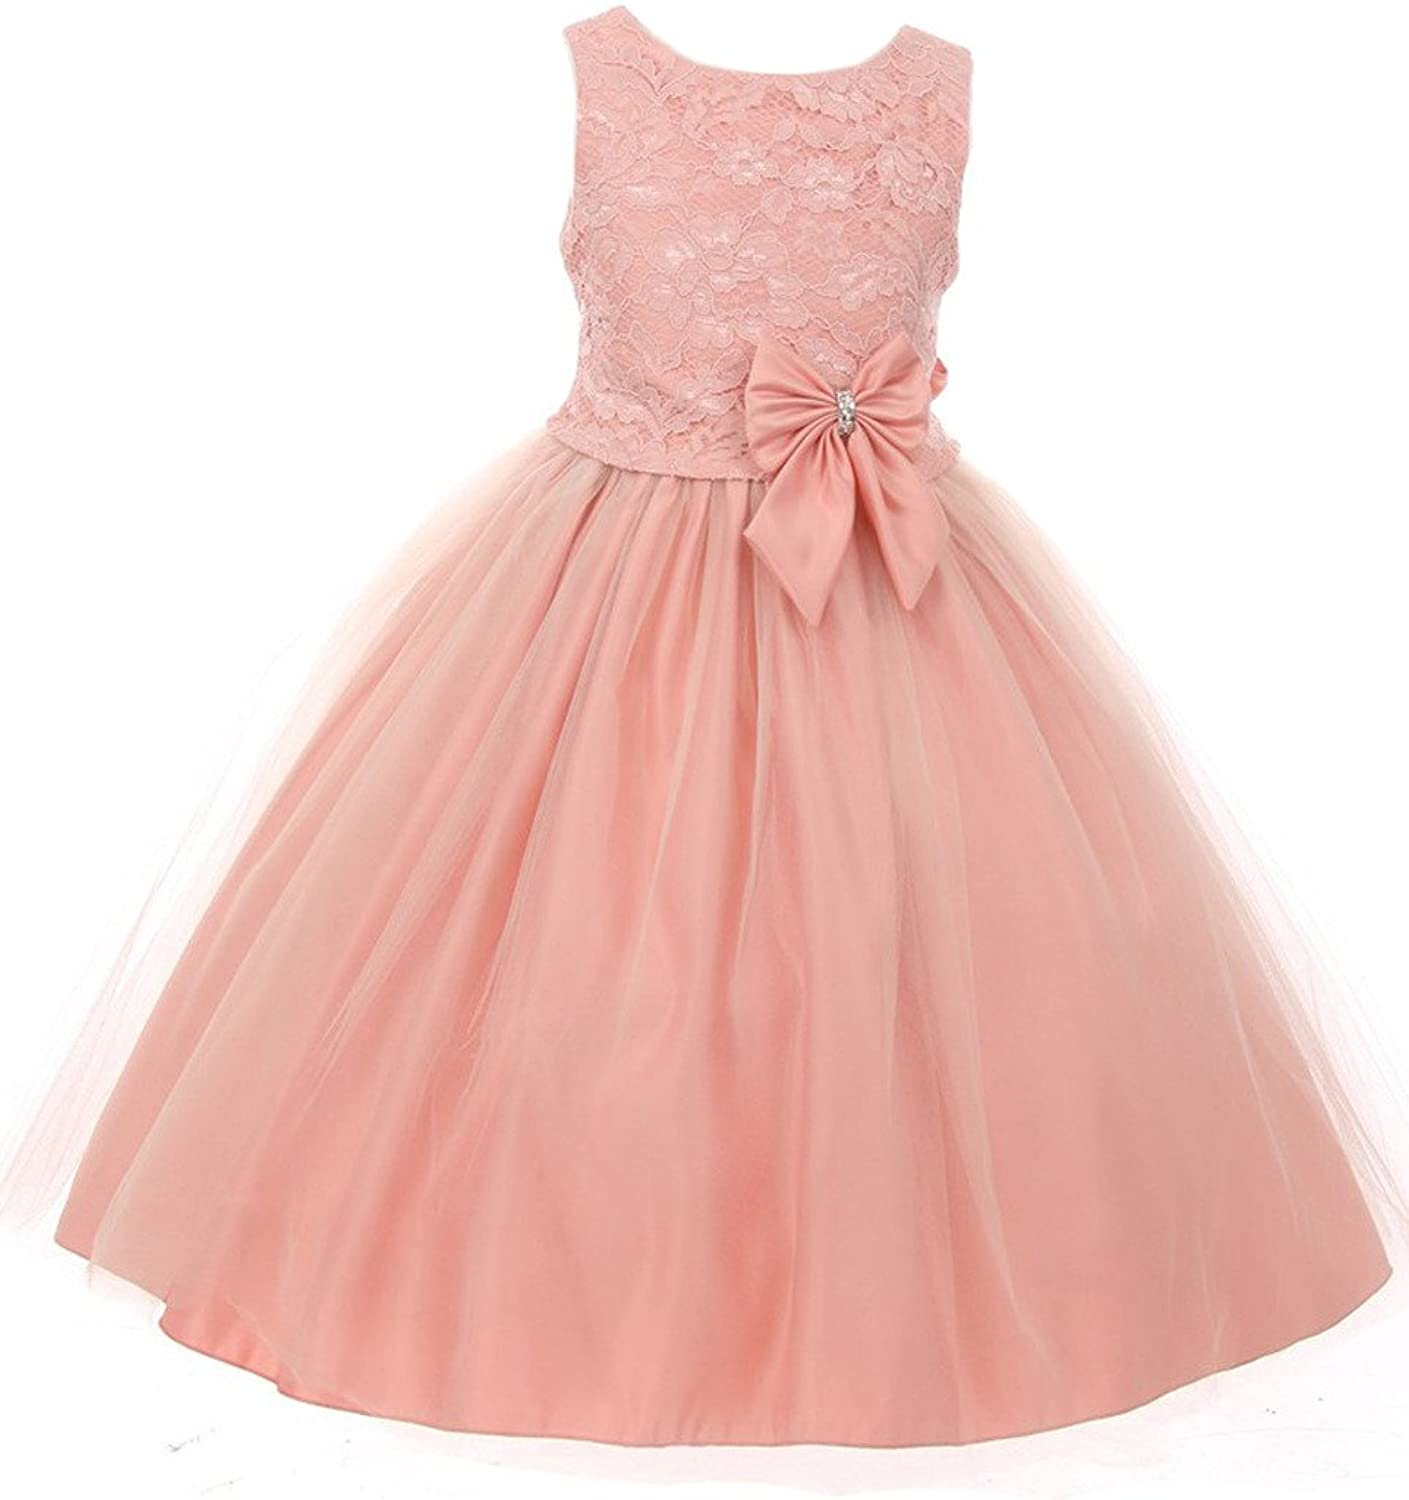 830bf897cd8 BNY Corner Lace Over Tull Flower Girl Dress  5MjuC0712020  -  28.99